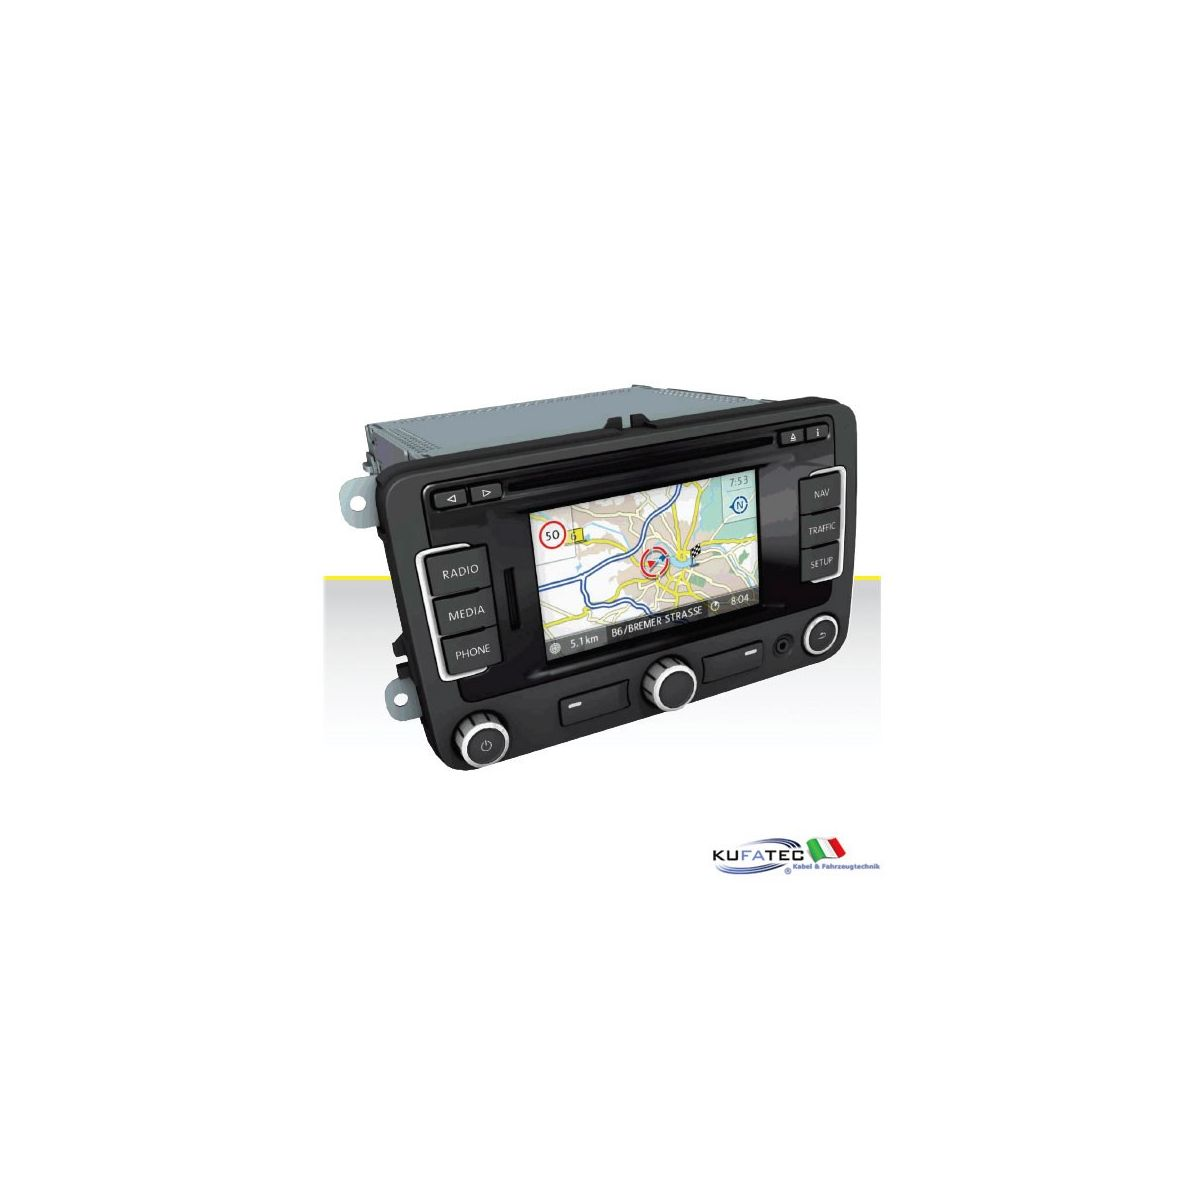 radio navigation system rns 315 display touch 5 incl. Black Bedroom Furniture Sets. Home Design Ideas